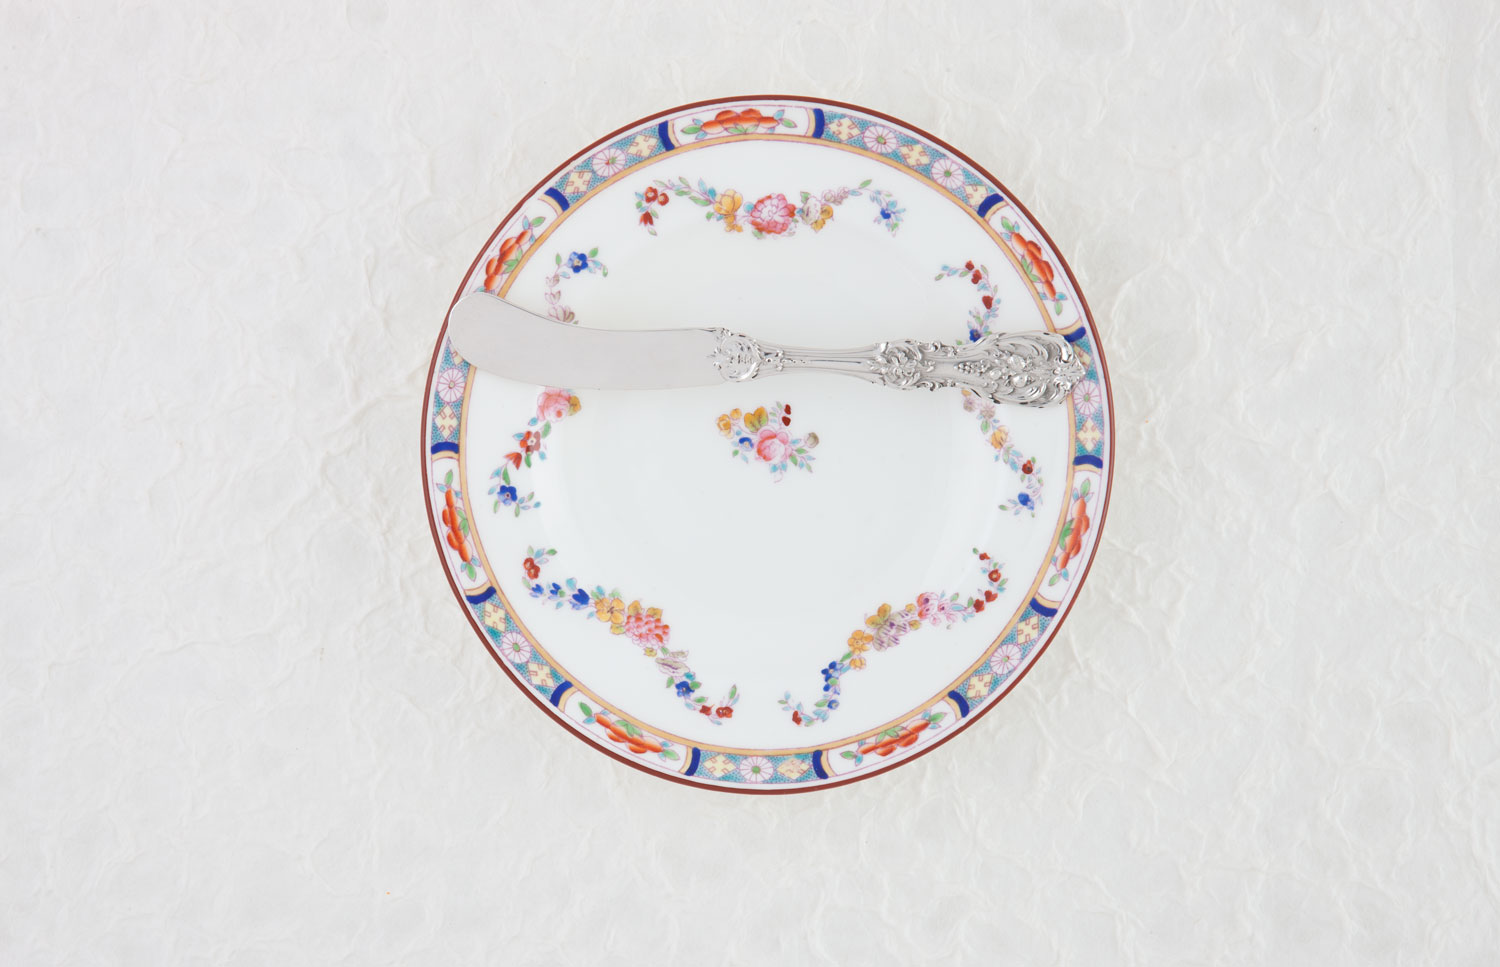 A photo of a bread plate and butter knife